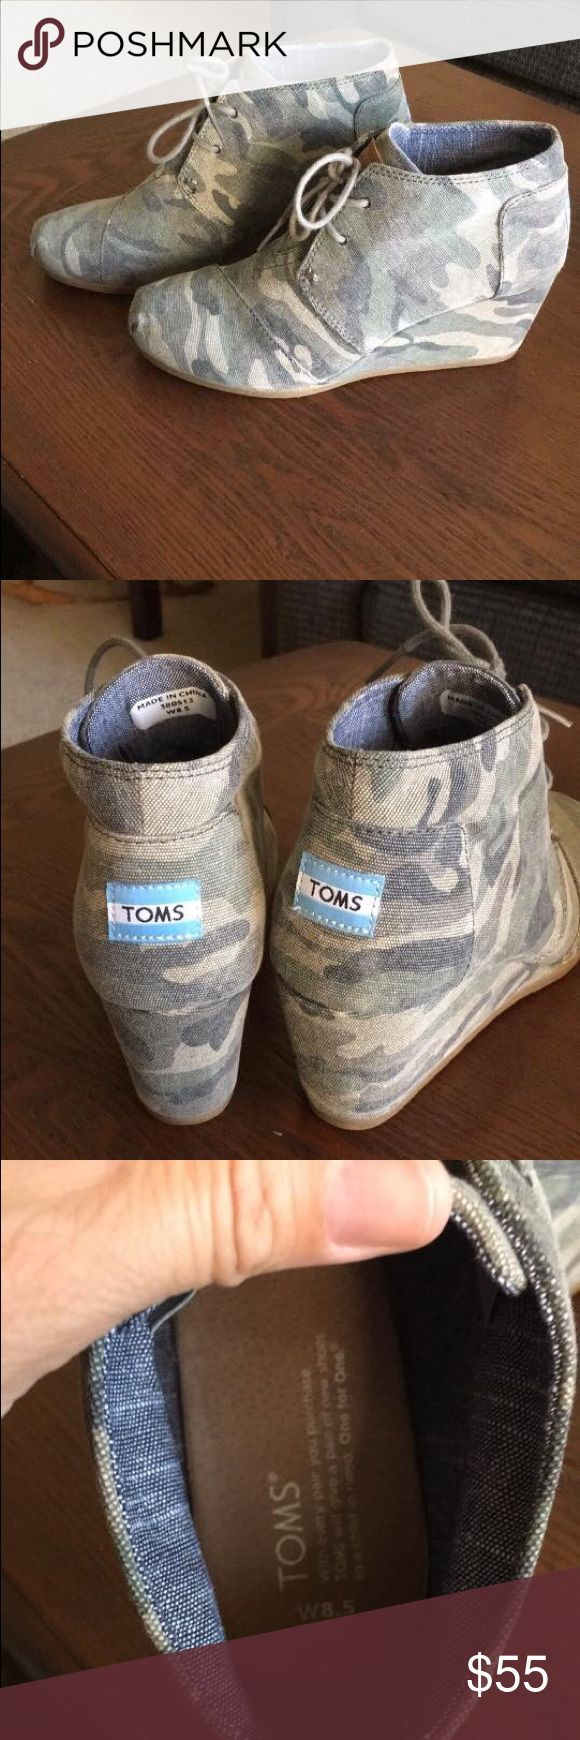 TOMS Camo Wedge Booties In EUC. Maybe worn once? Size 8.5 women's. TOMS Shoes Ankle Boots & Booties